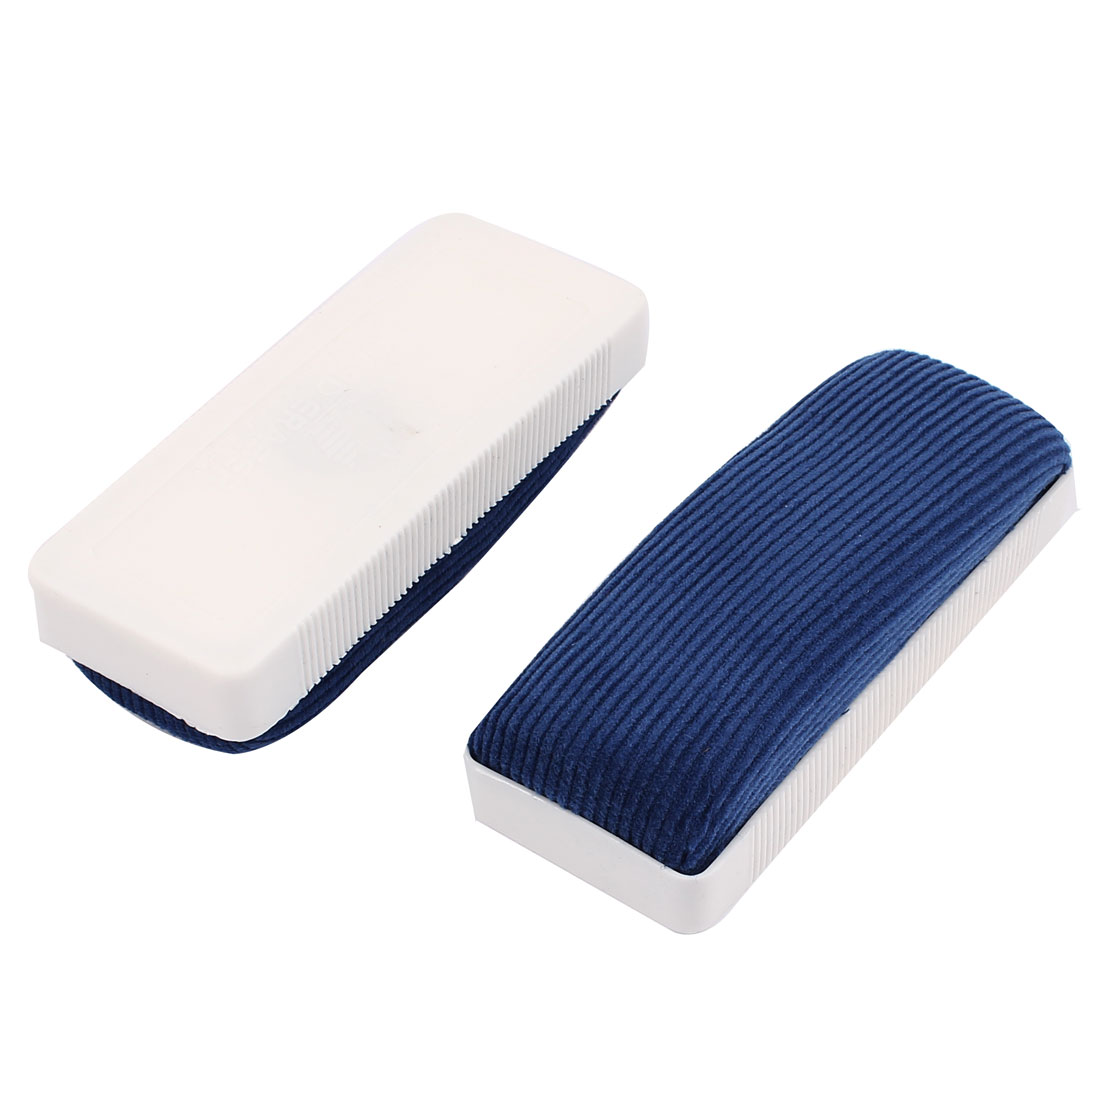 2pcs White Plastic Housing Blue Velvet Blackboard Chalkboard Whiteboard Cleaner Eraser Brush